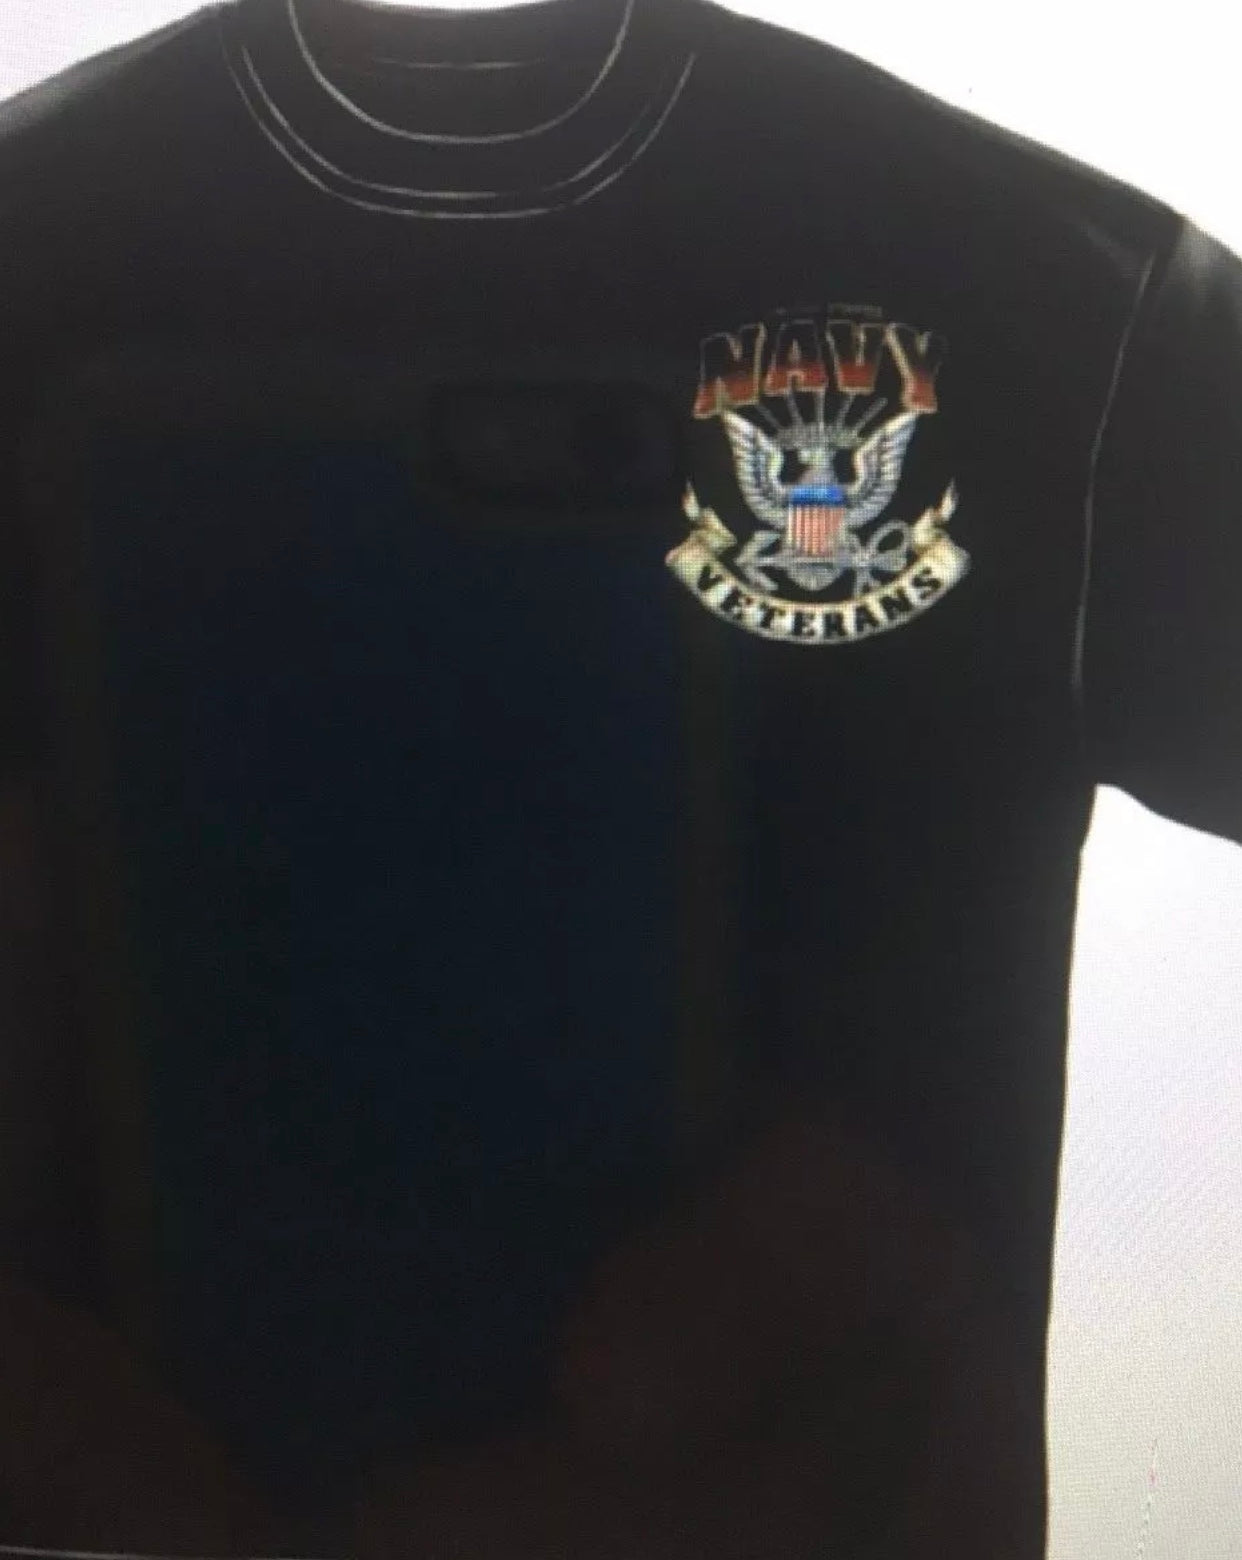 Navy Proud To Have Served Veterans T-Shirt - The Wall Kids, Inc.